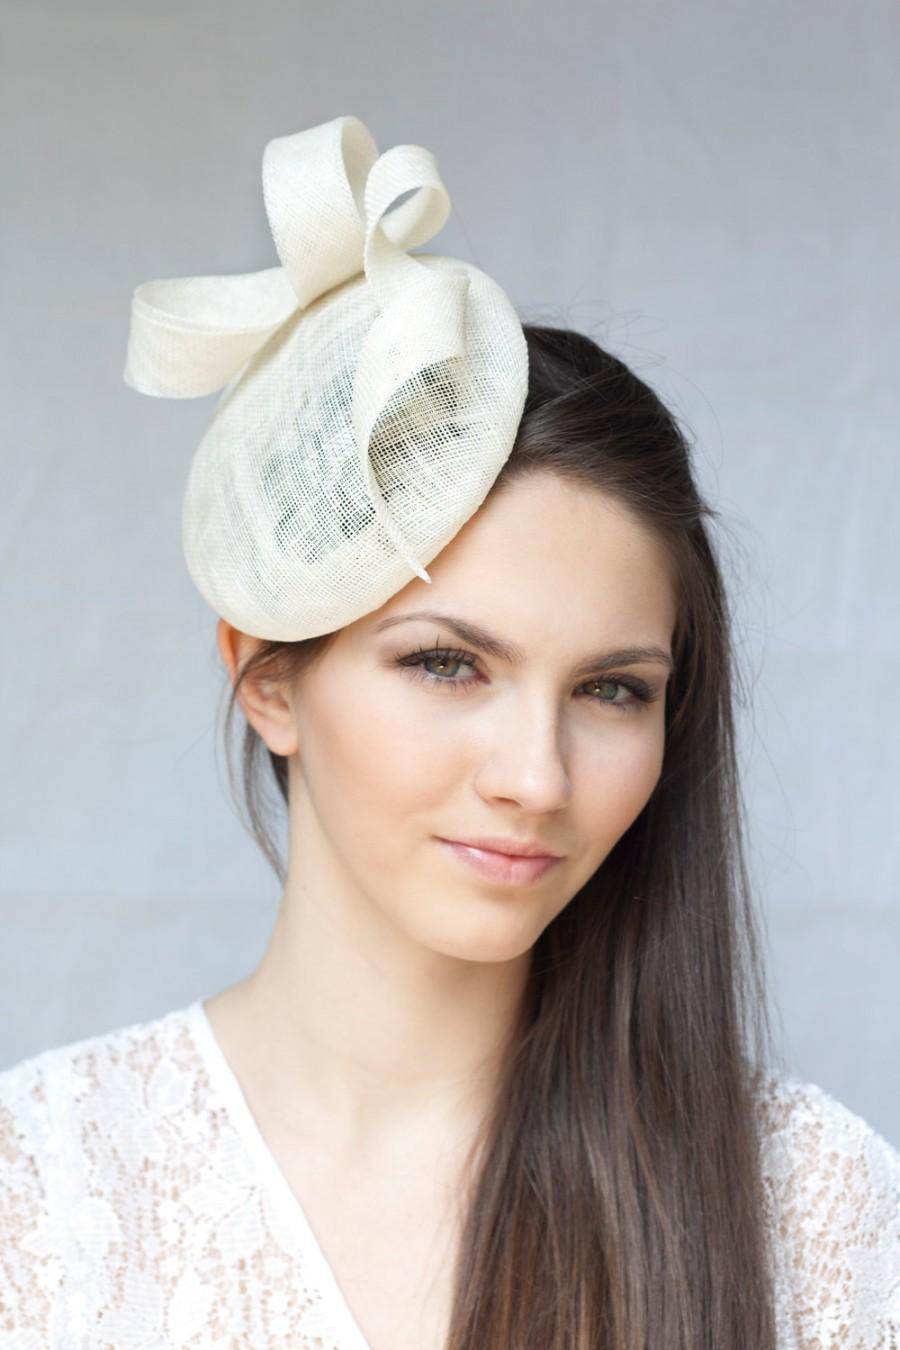 Mariage - Bridal Sinamay Beret with Swirl, Bridal Millinery Hat, Ivory Beret, Vintage inspired Pillbox